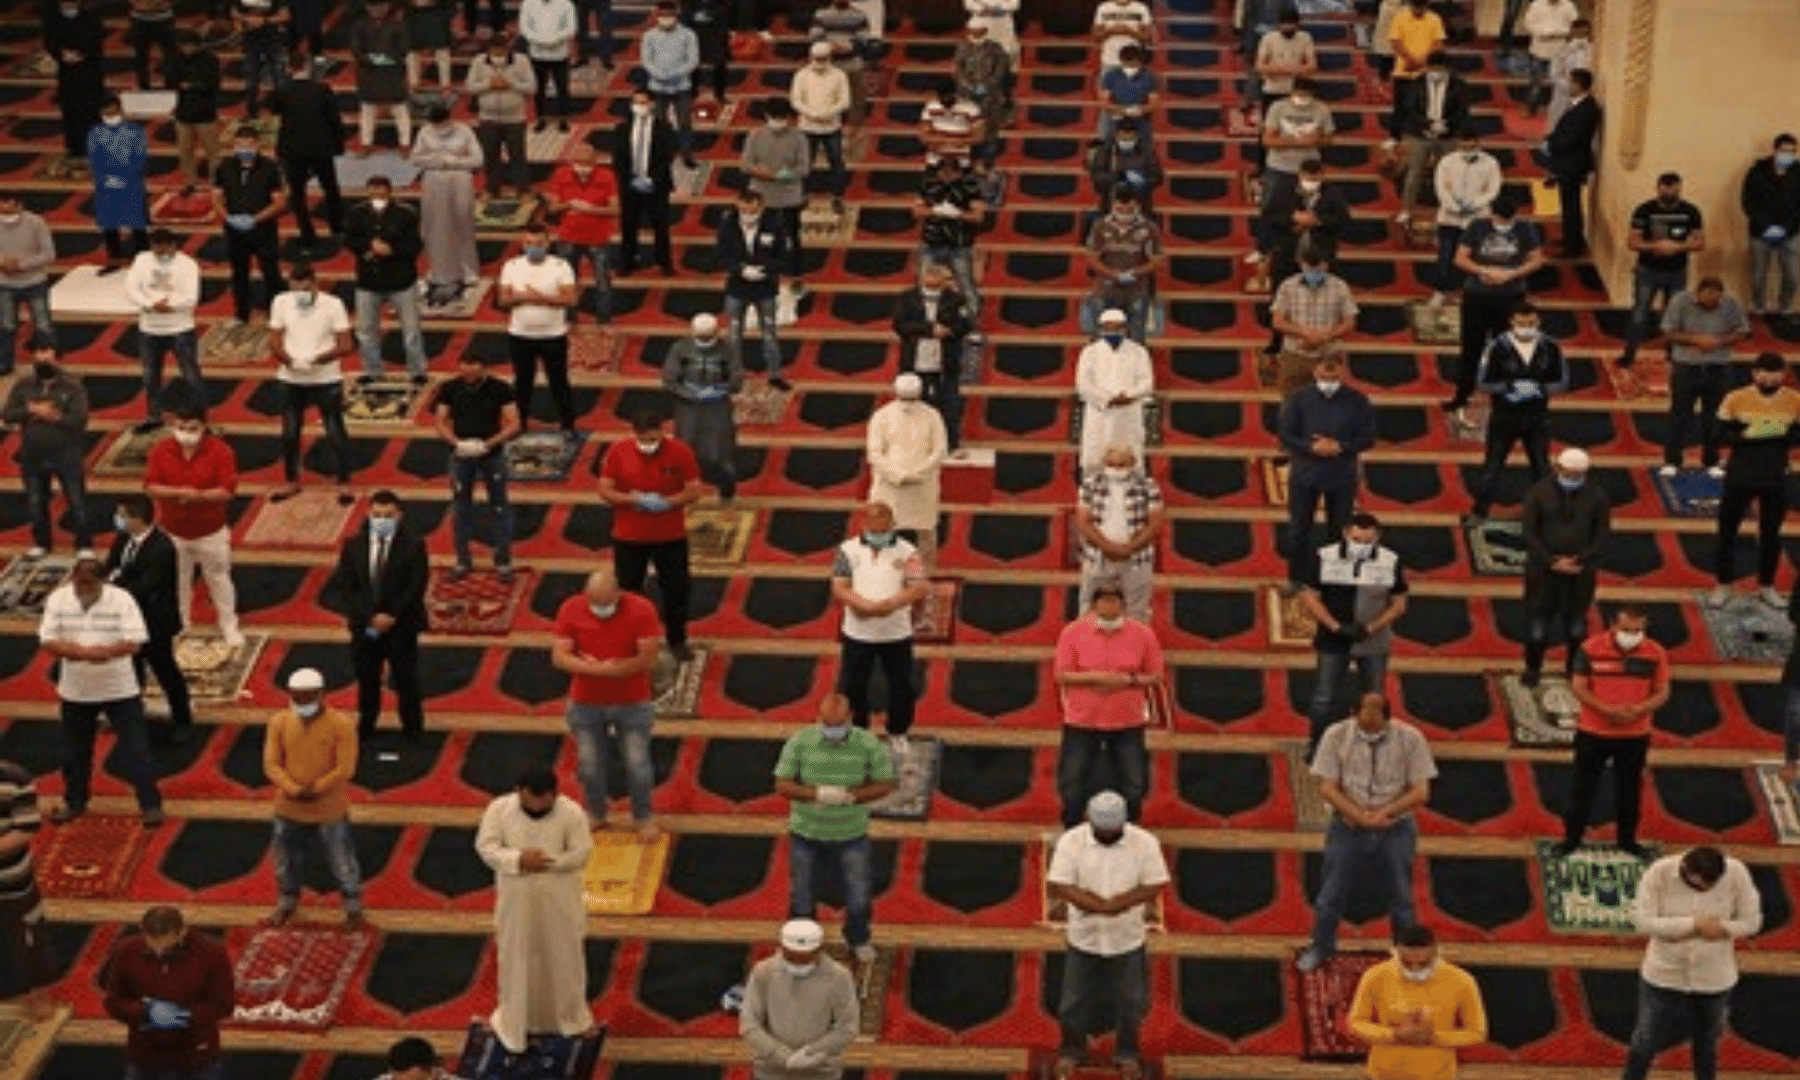 Muslims observe social distancing while offering the Eidul Fitr prayers in a mosque in Lebanon. — Reuters